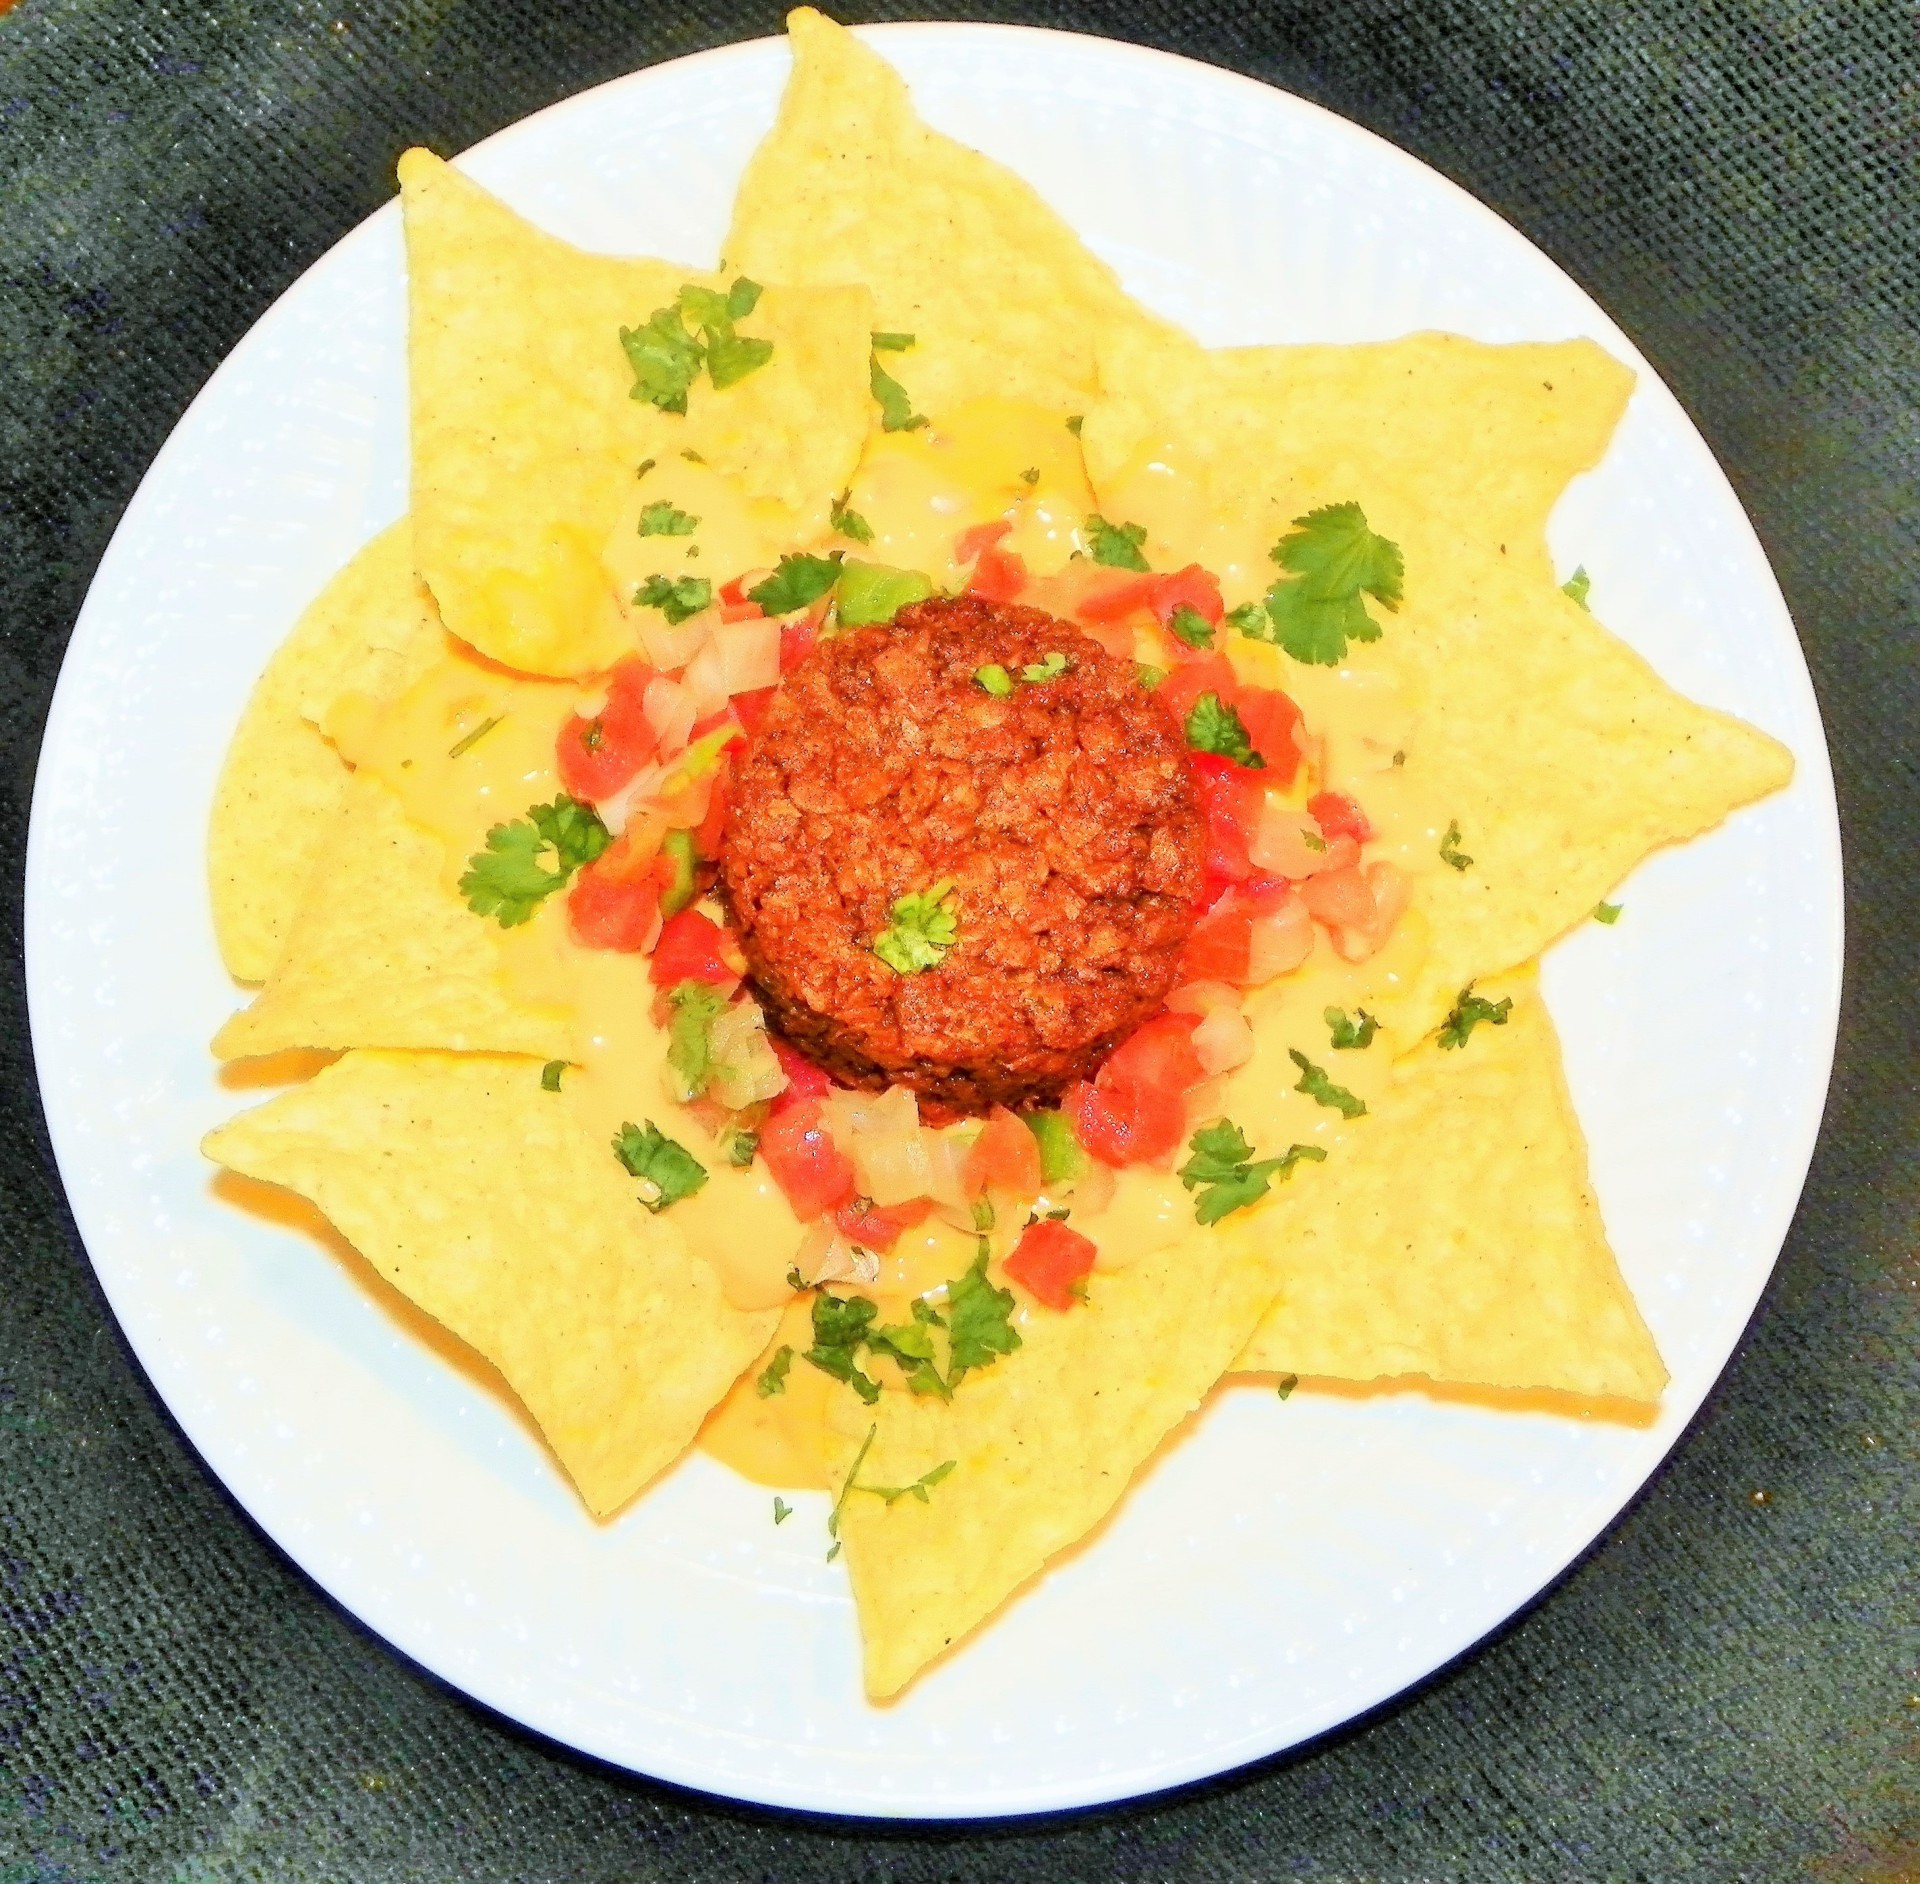 Soy Chorizo for a healthier alternative, with homemade cheese sauce, garnished with fresh Pico de Ga